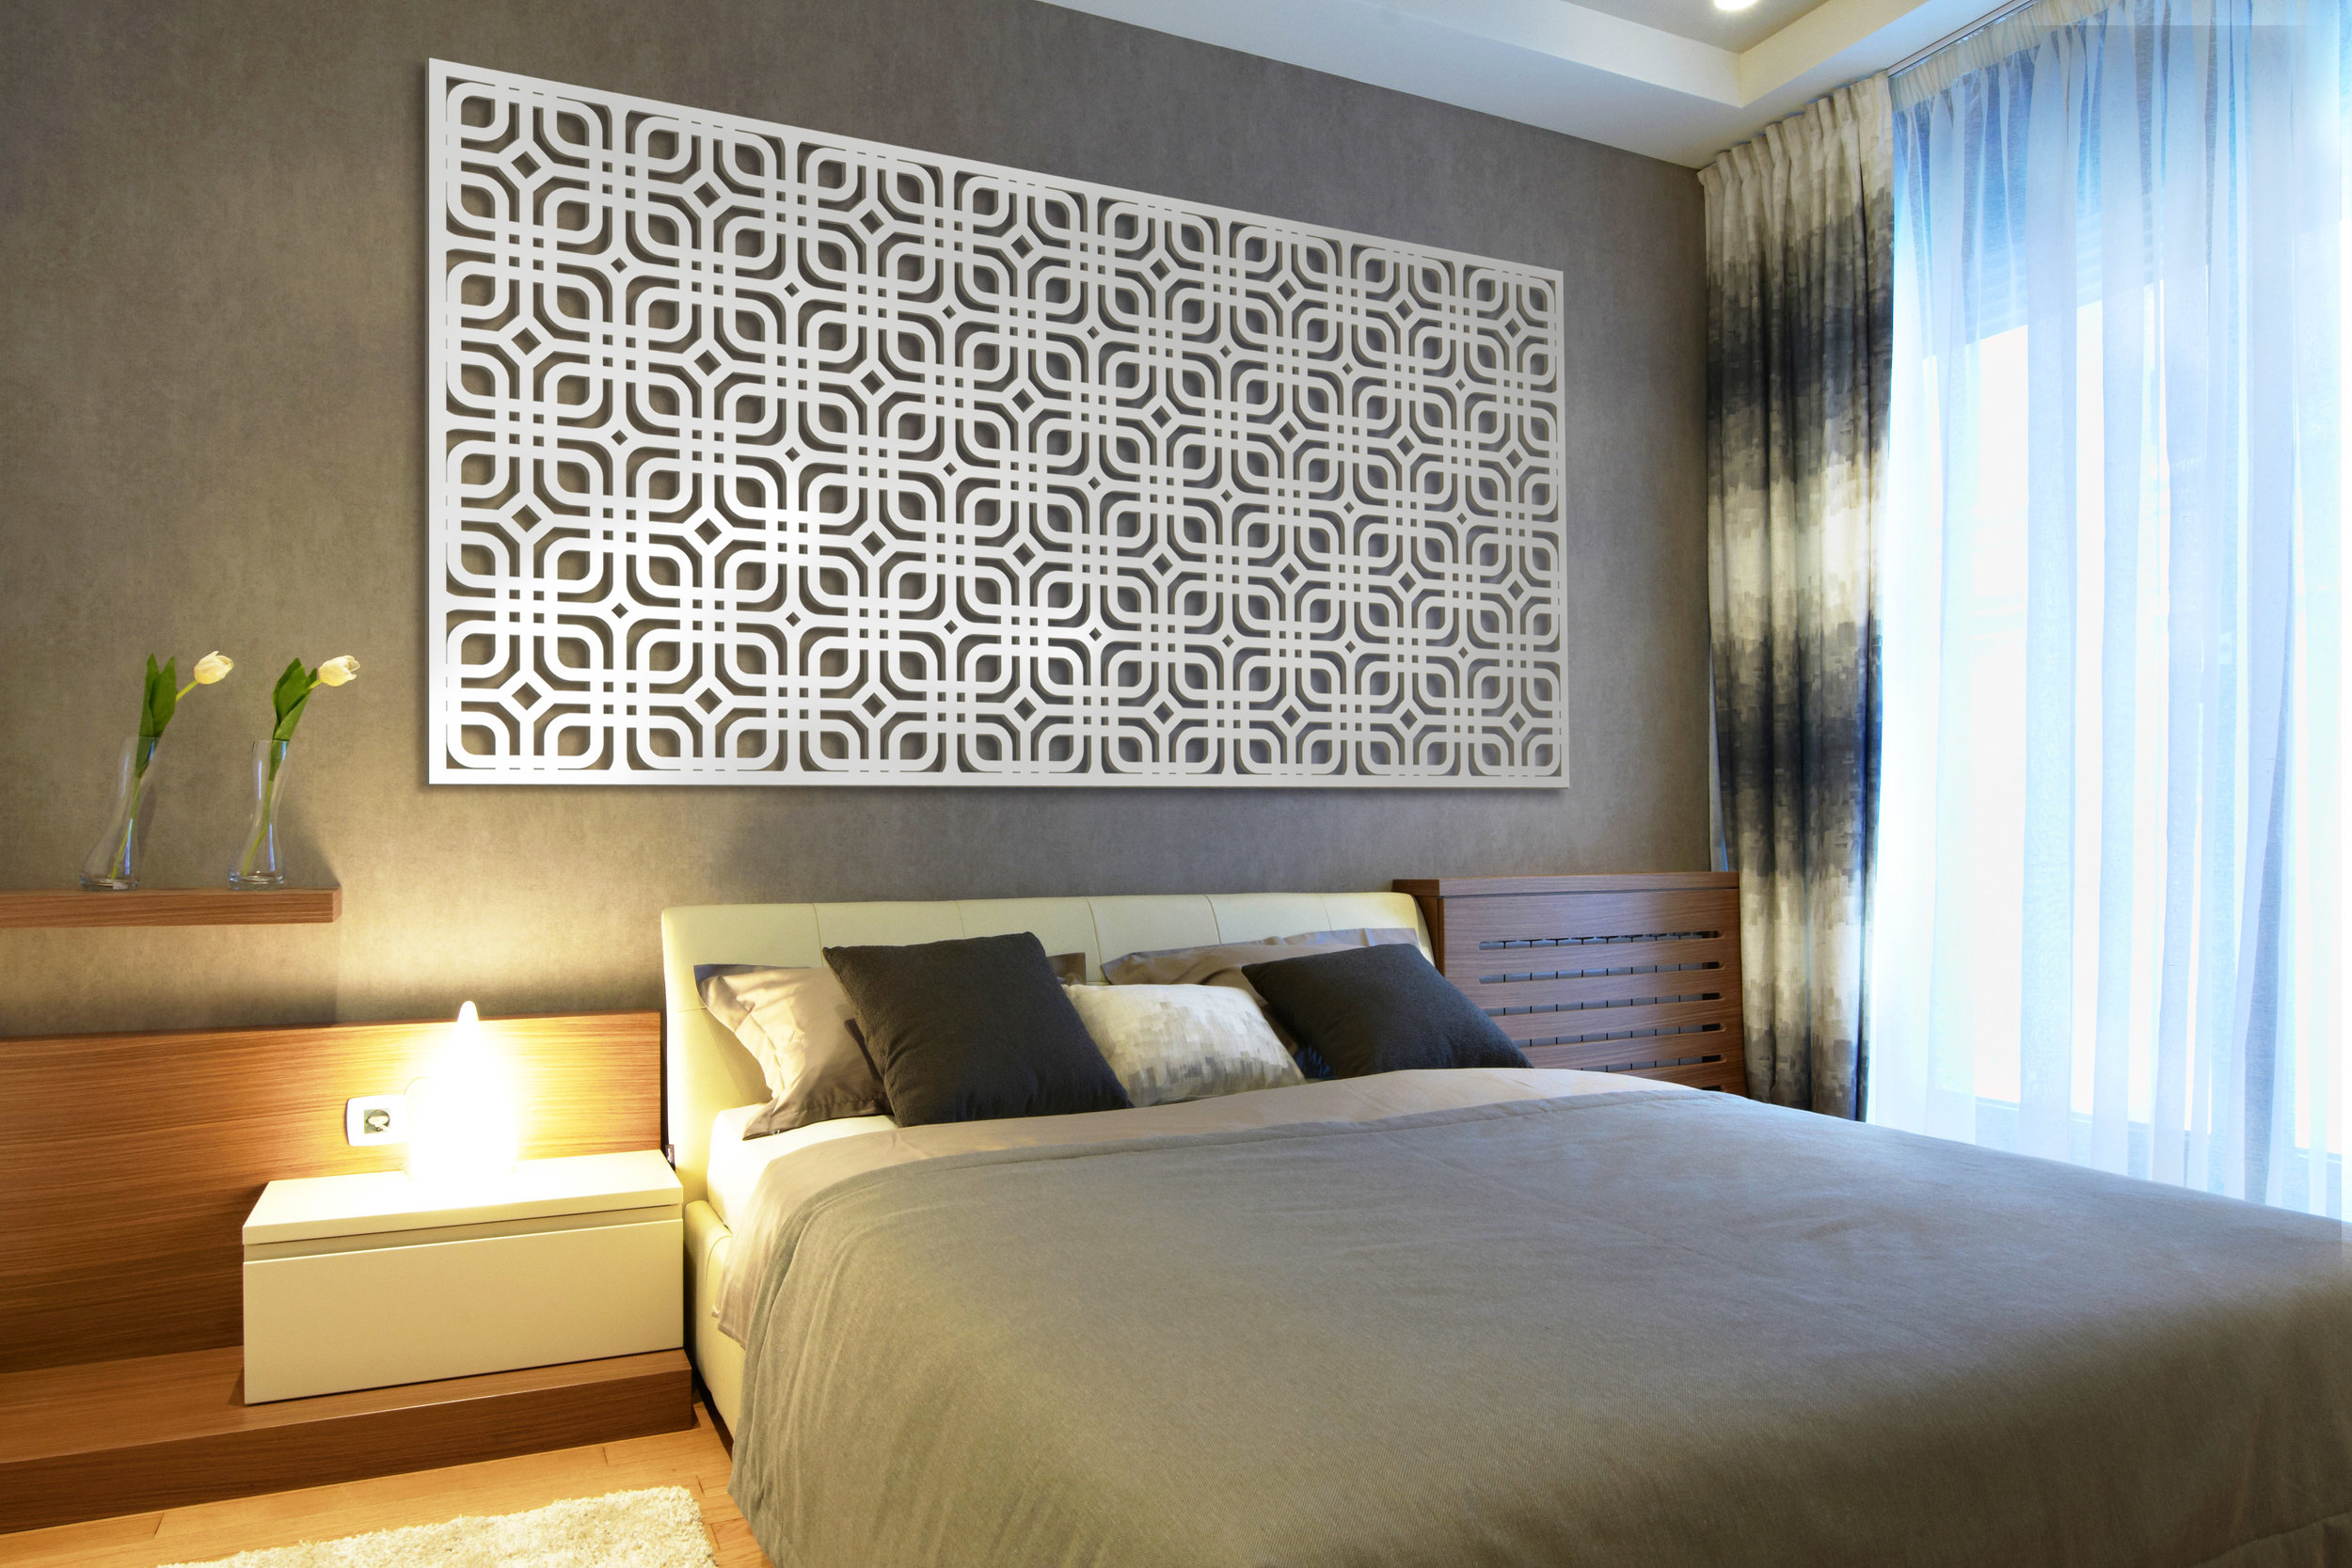 Installation Rendering B   Rounded Squares decorative hotel wall panel - painted